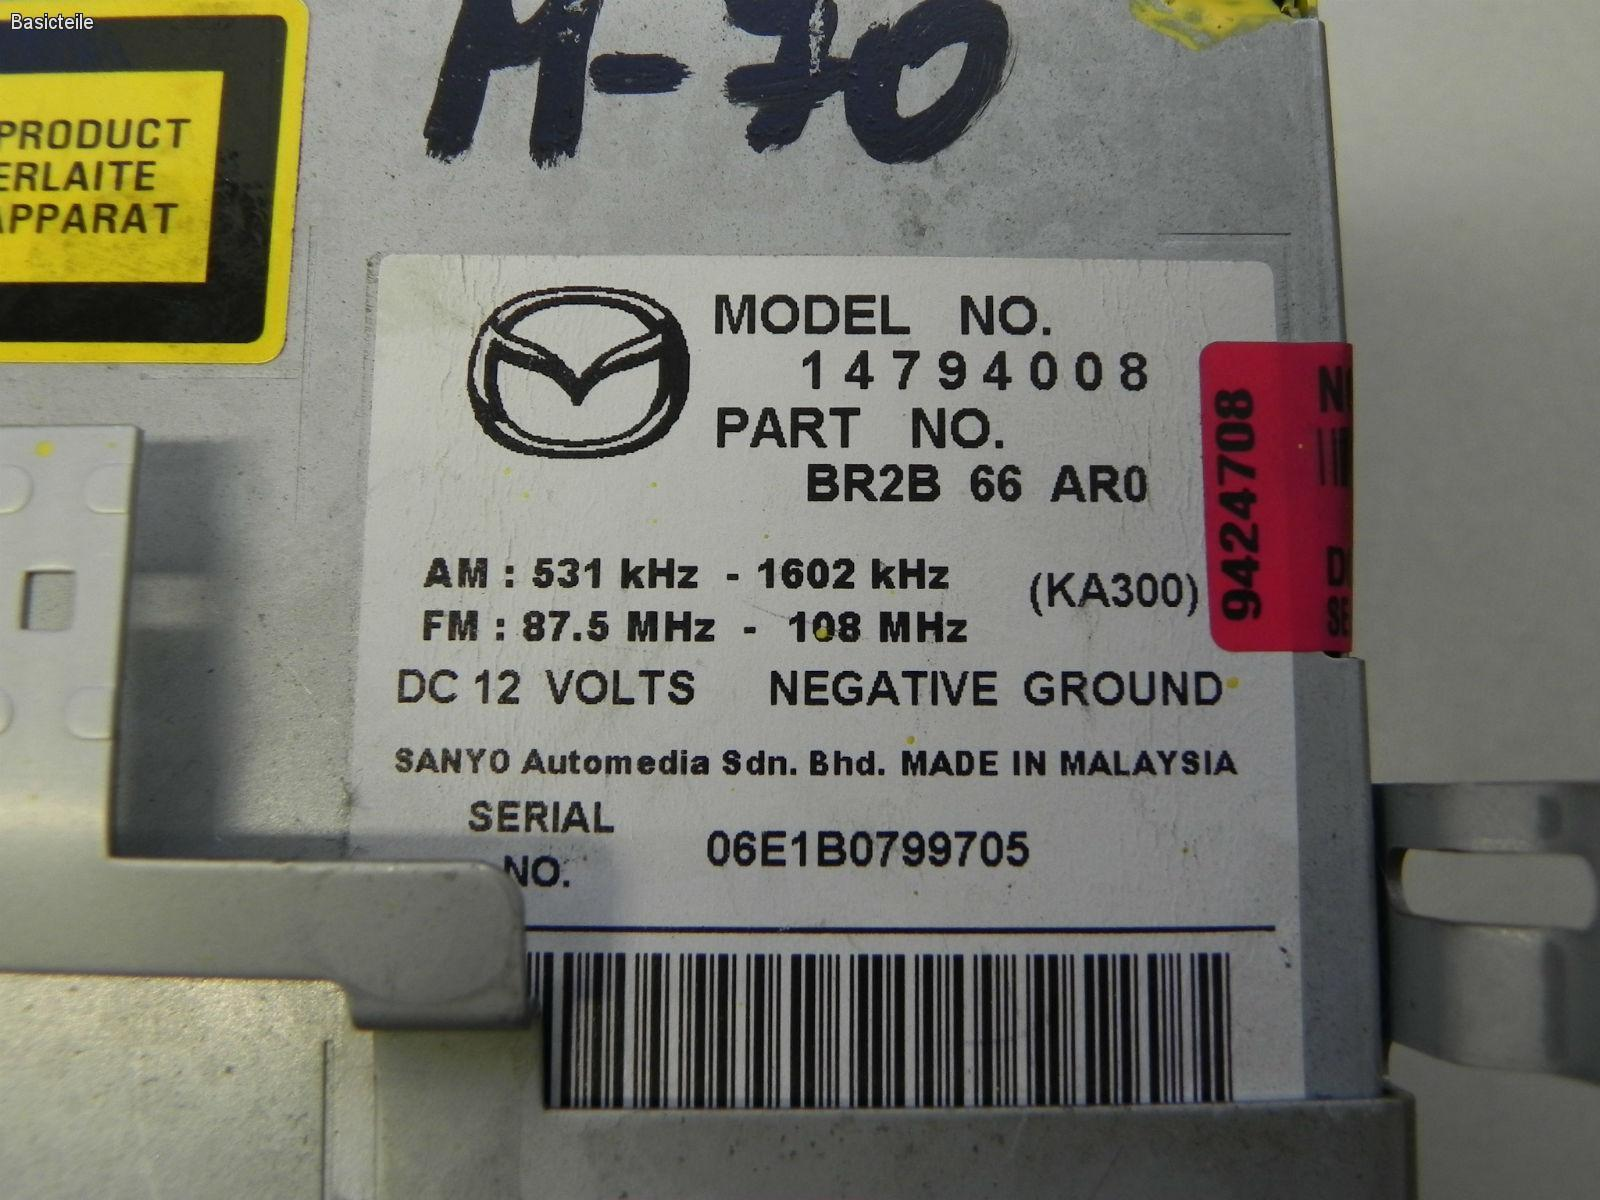 br2b 66 ar0_label 2005 mazda3 head unit for the trip computer mazda3 forums the  at mifinder.co